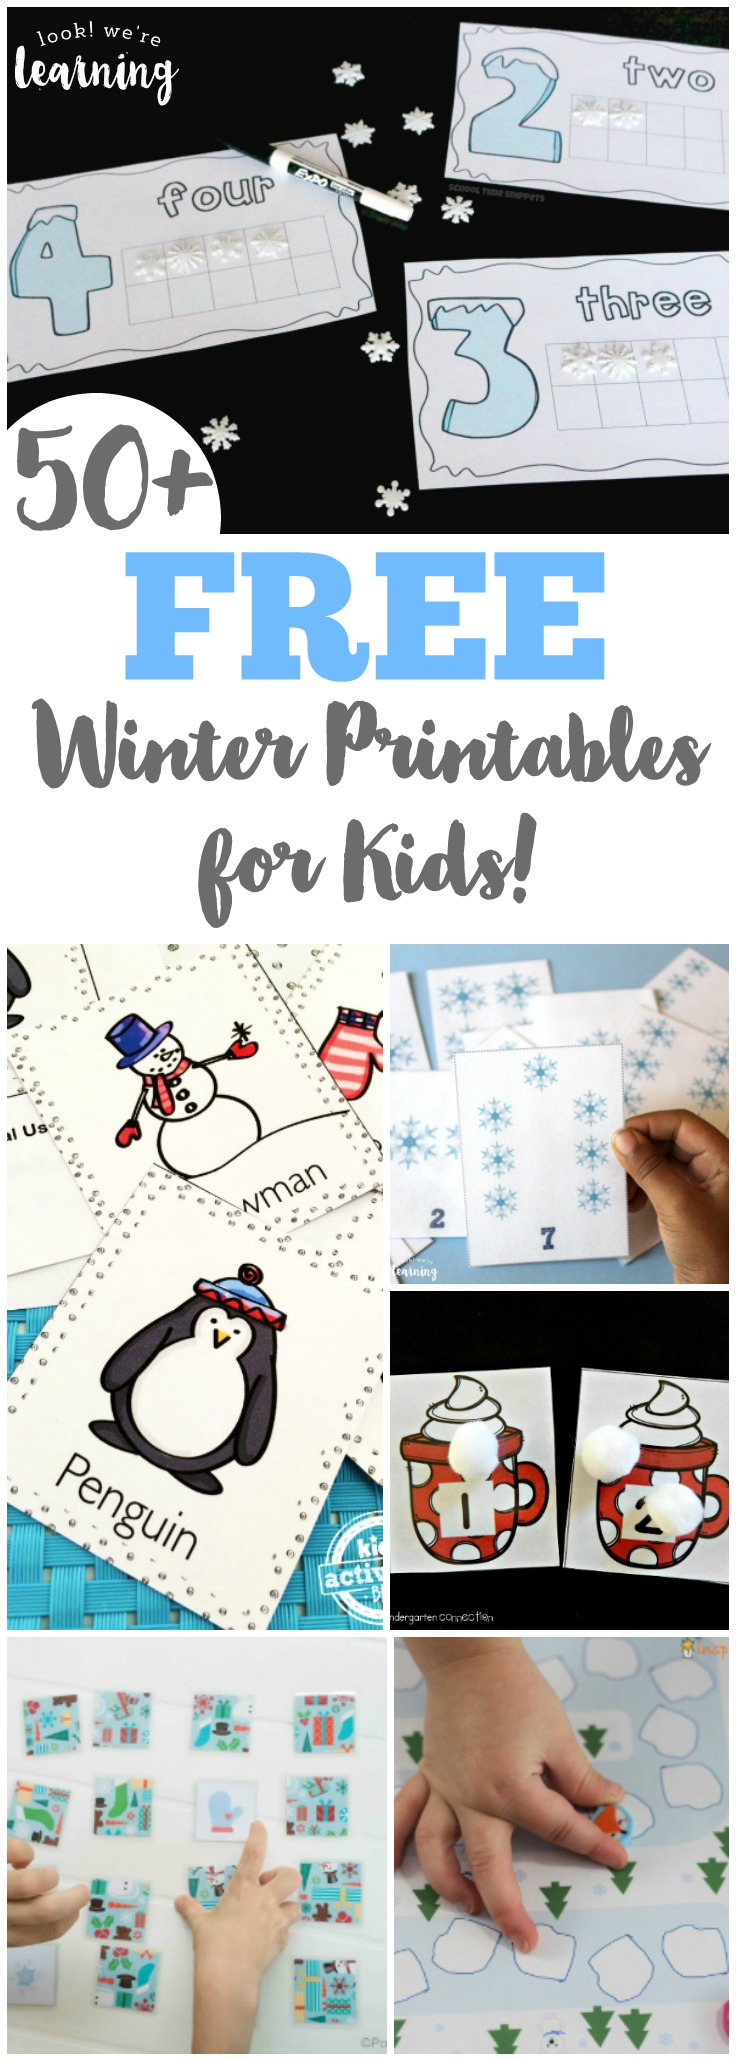 Keep learning all winter long with these fun and free winter printables for kids!